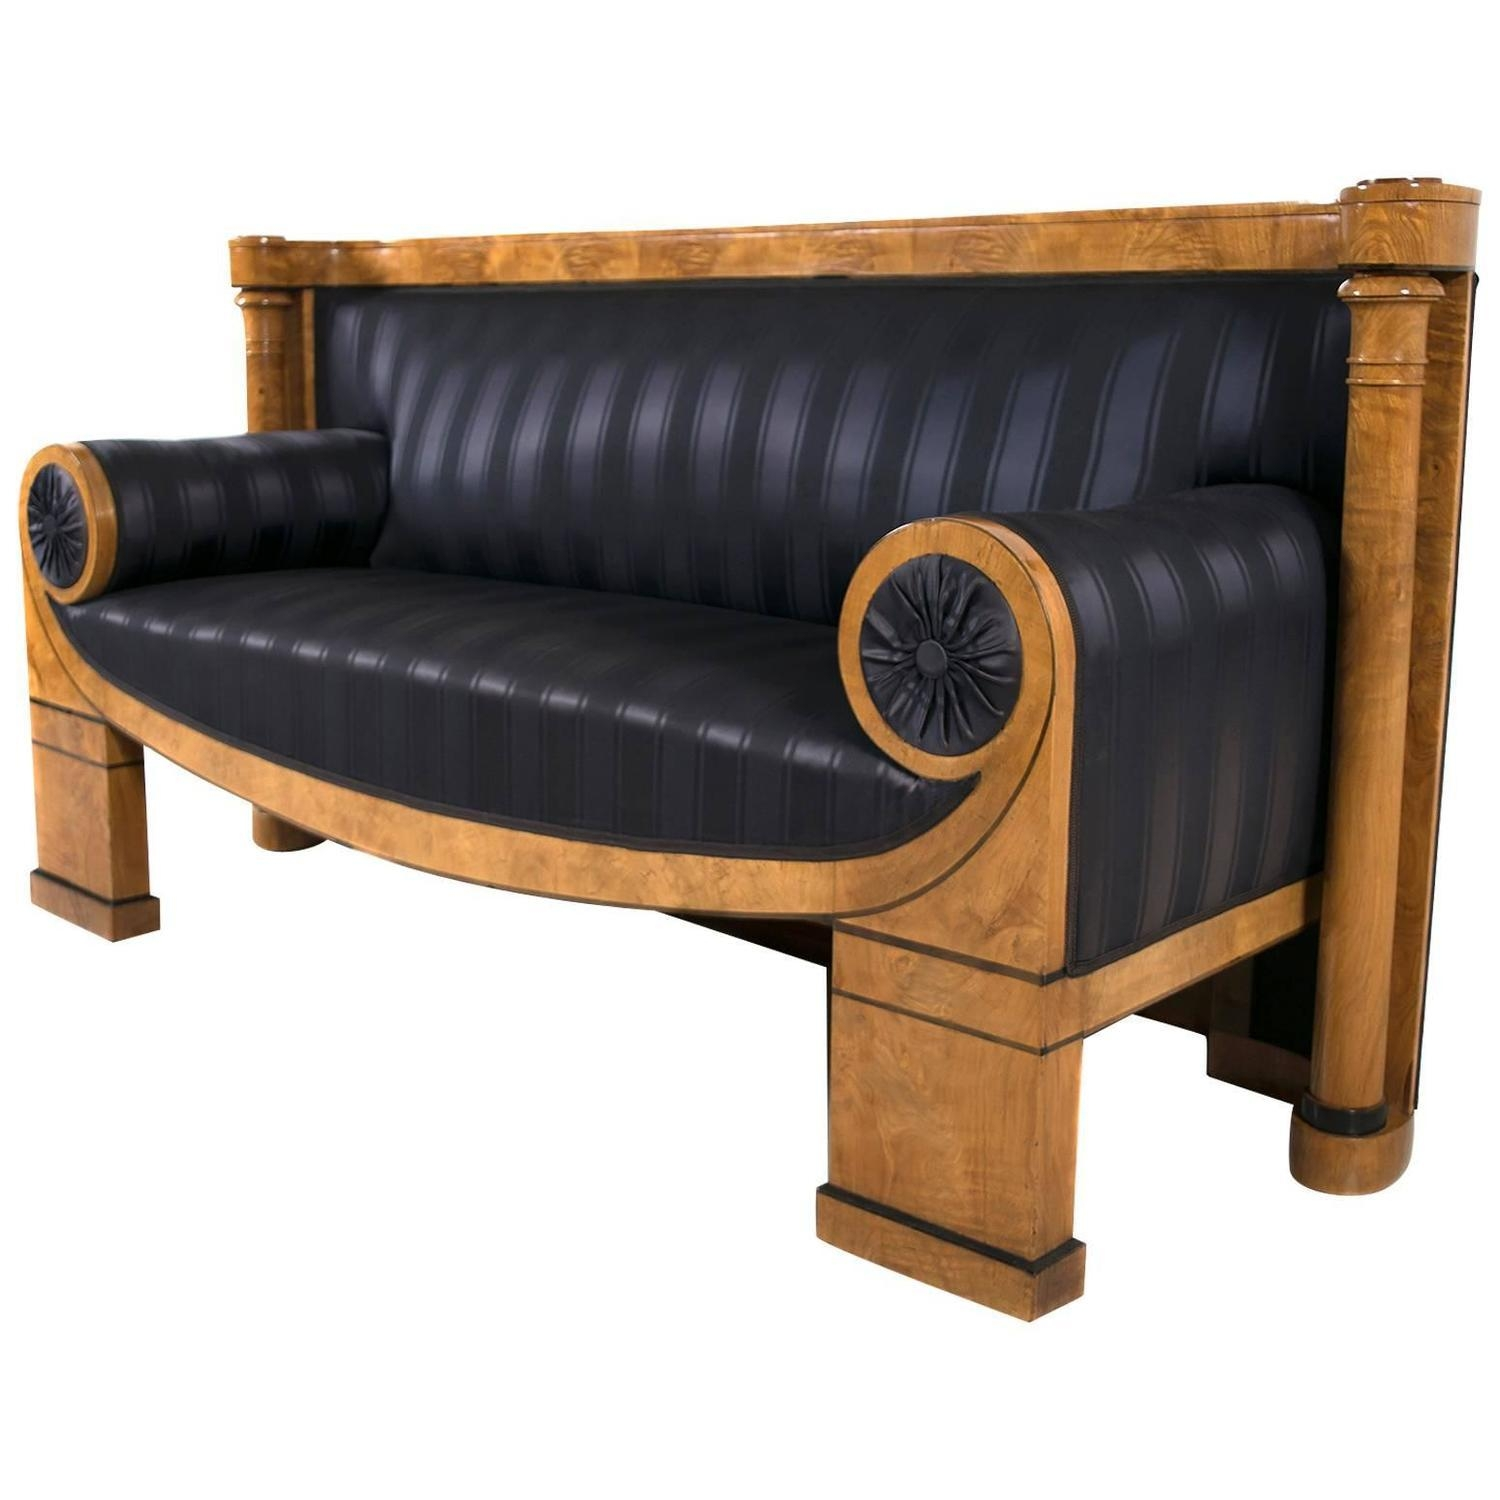 Biedermeier Sofas – 54 For Sale At 1Stdibs Within Biedermeier Sofas (Image 14 of 20)